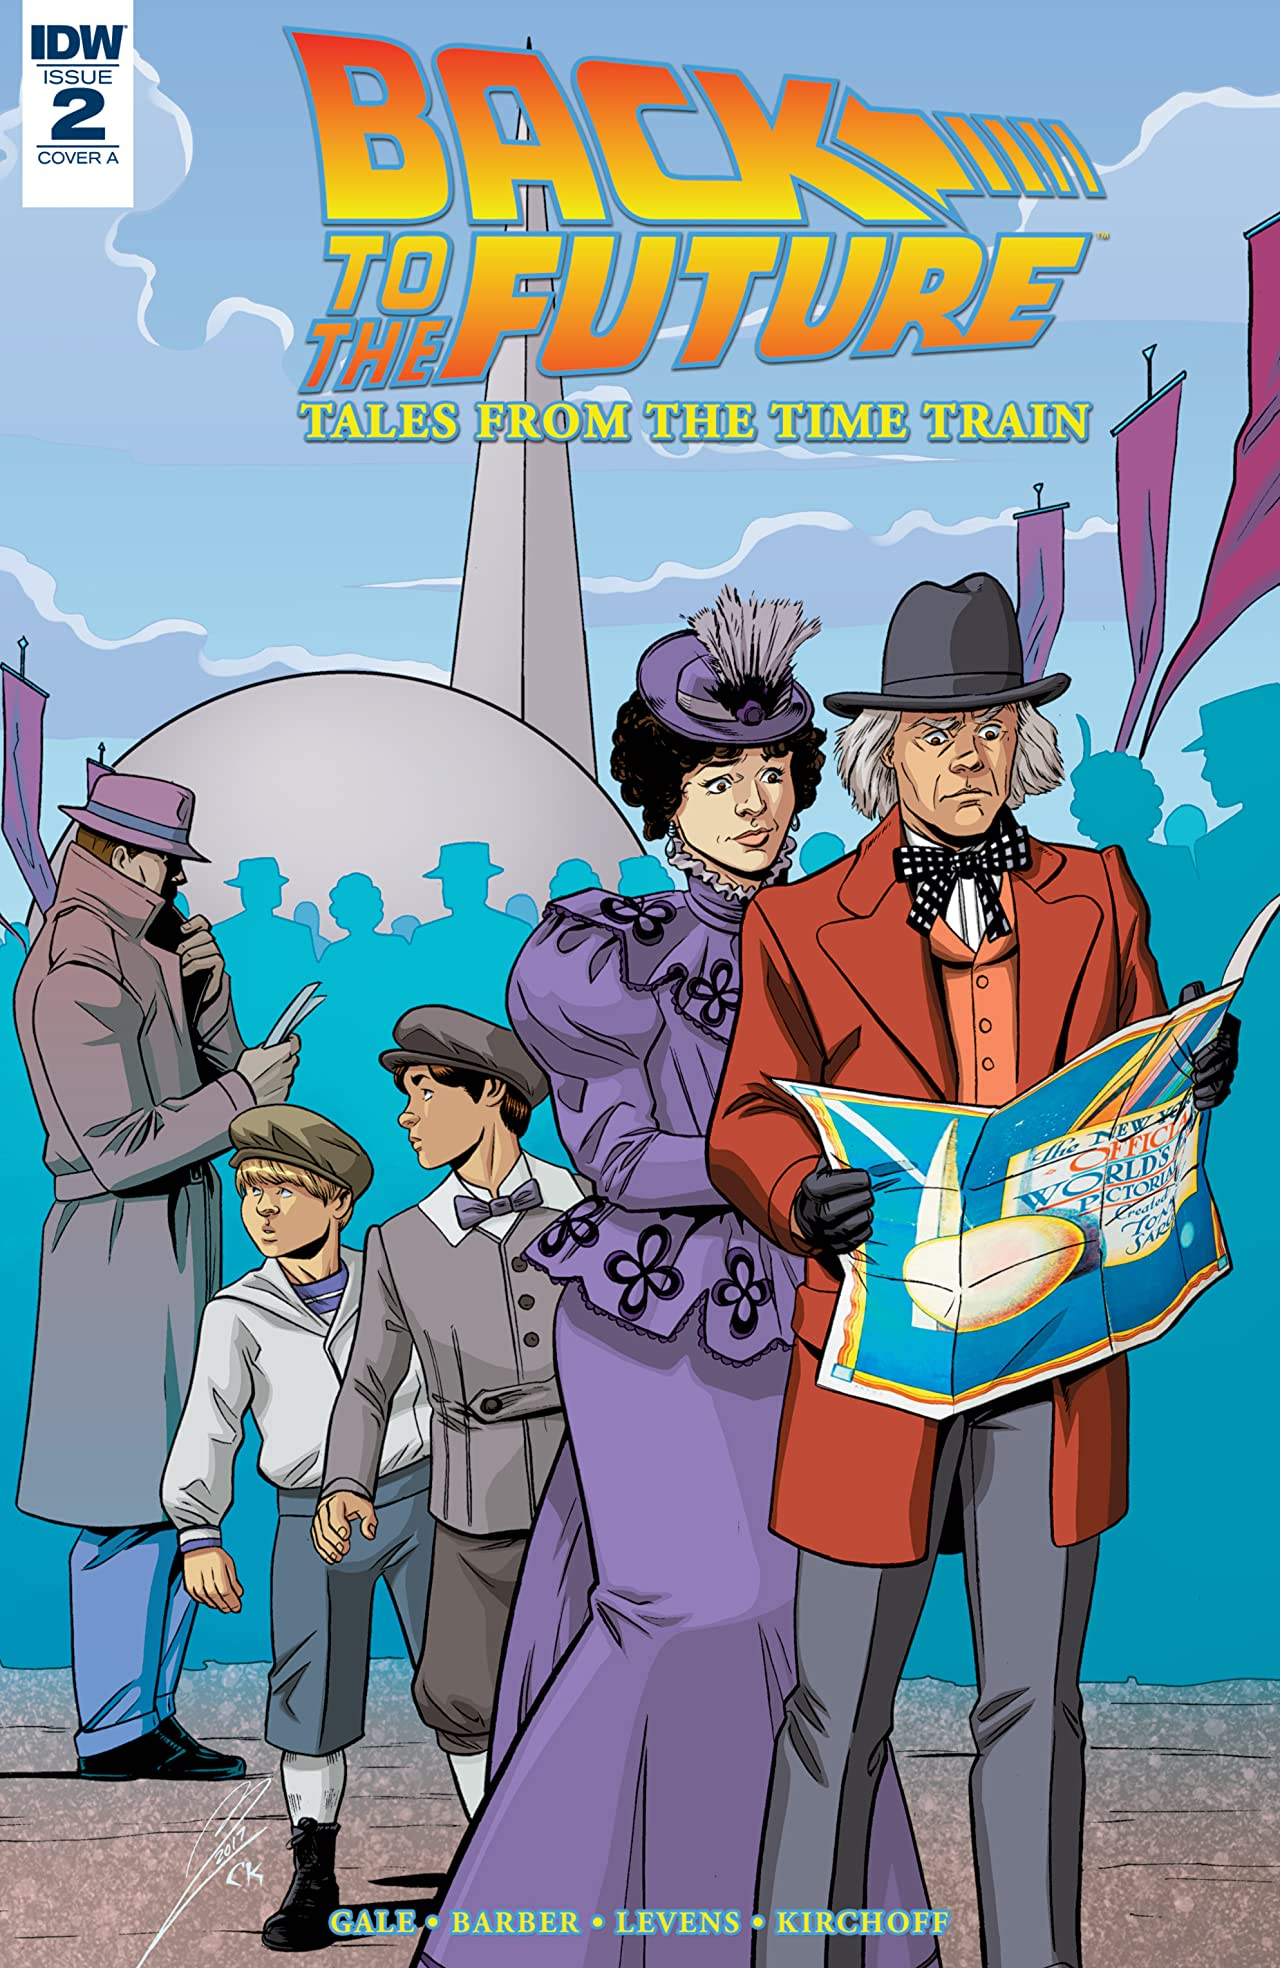 Back to the Future: Tales from the Time Train #2